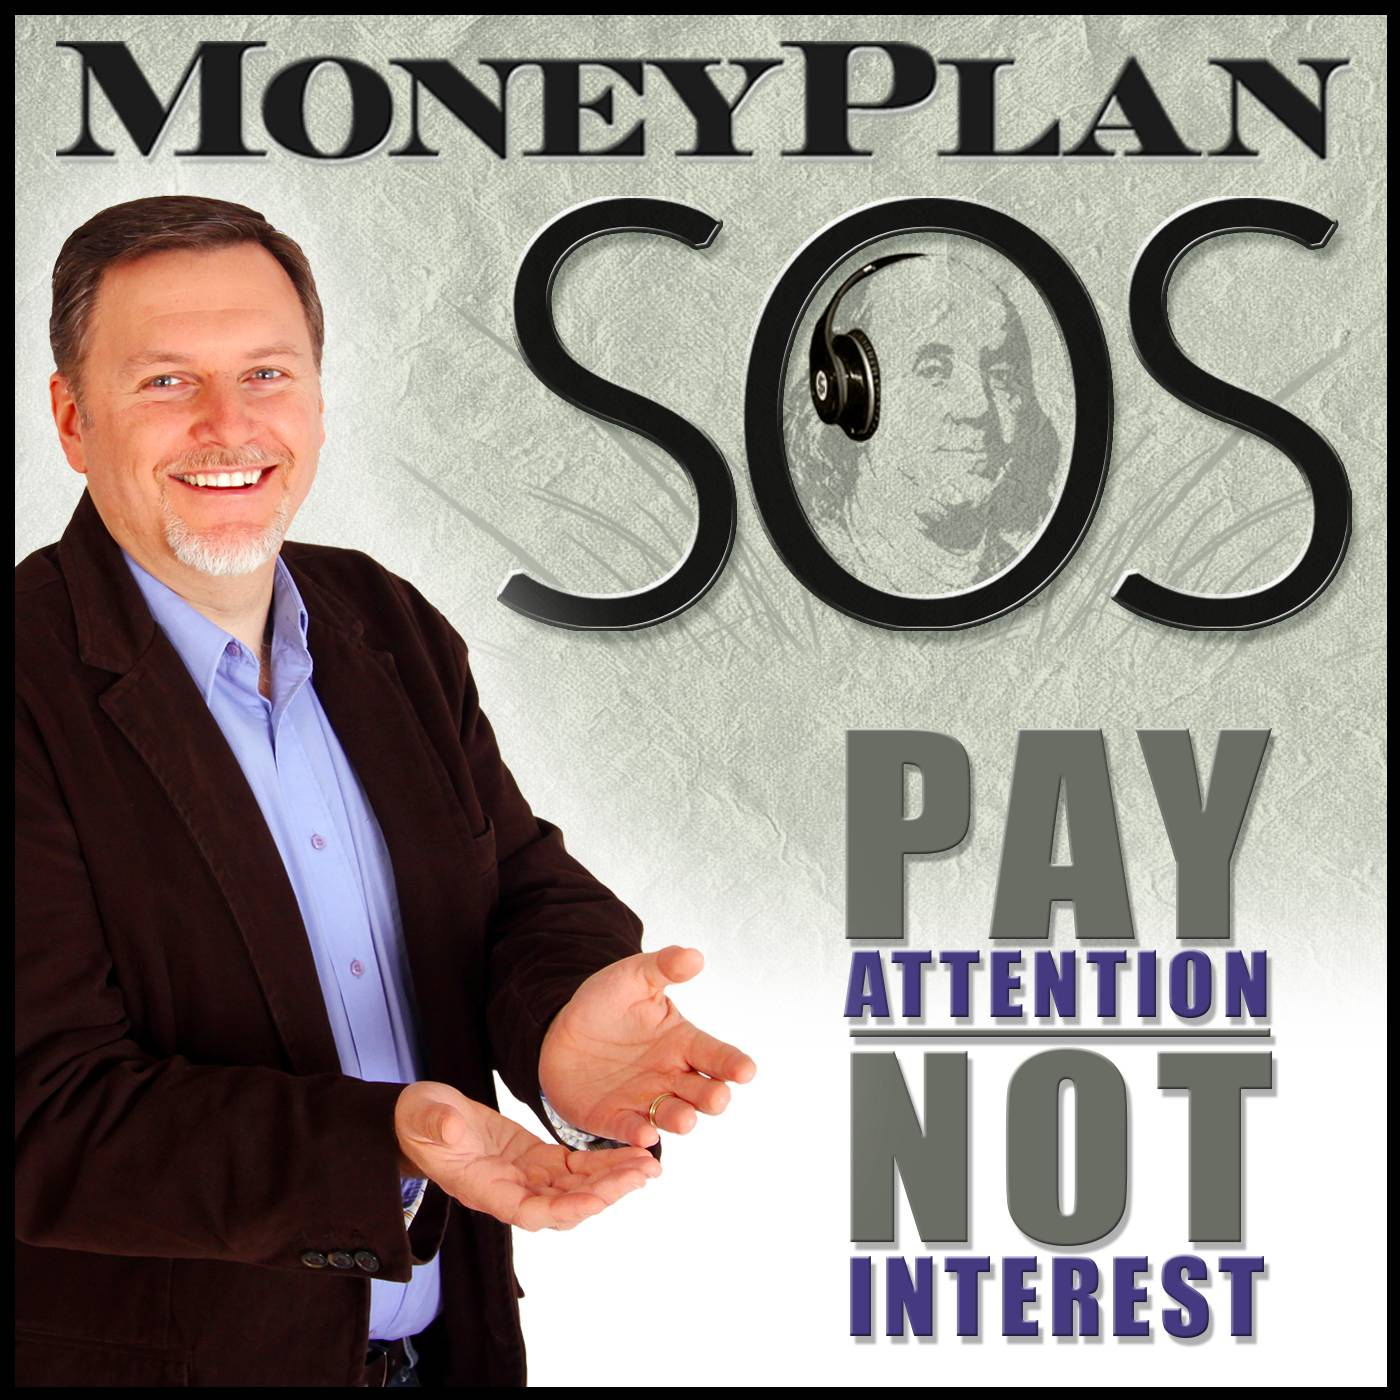 Steve Stewart's Podcasts about Money and Financial Wellness